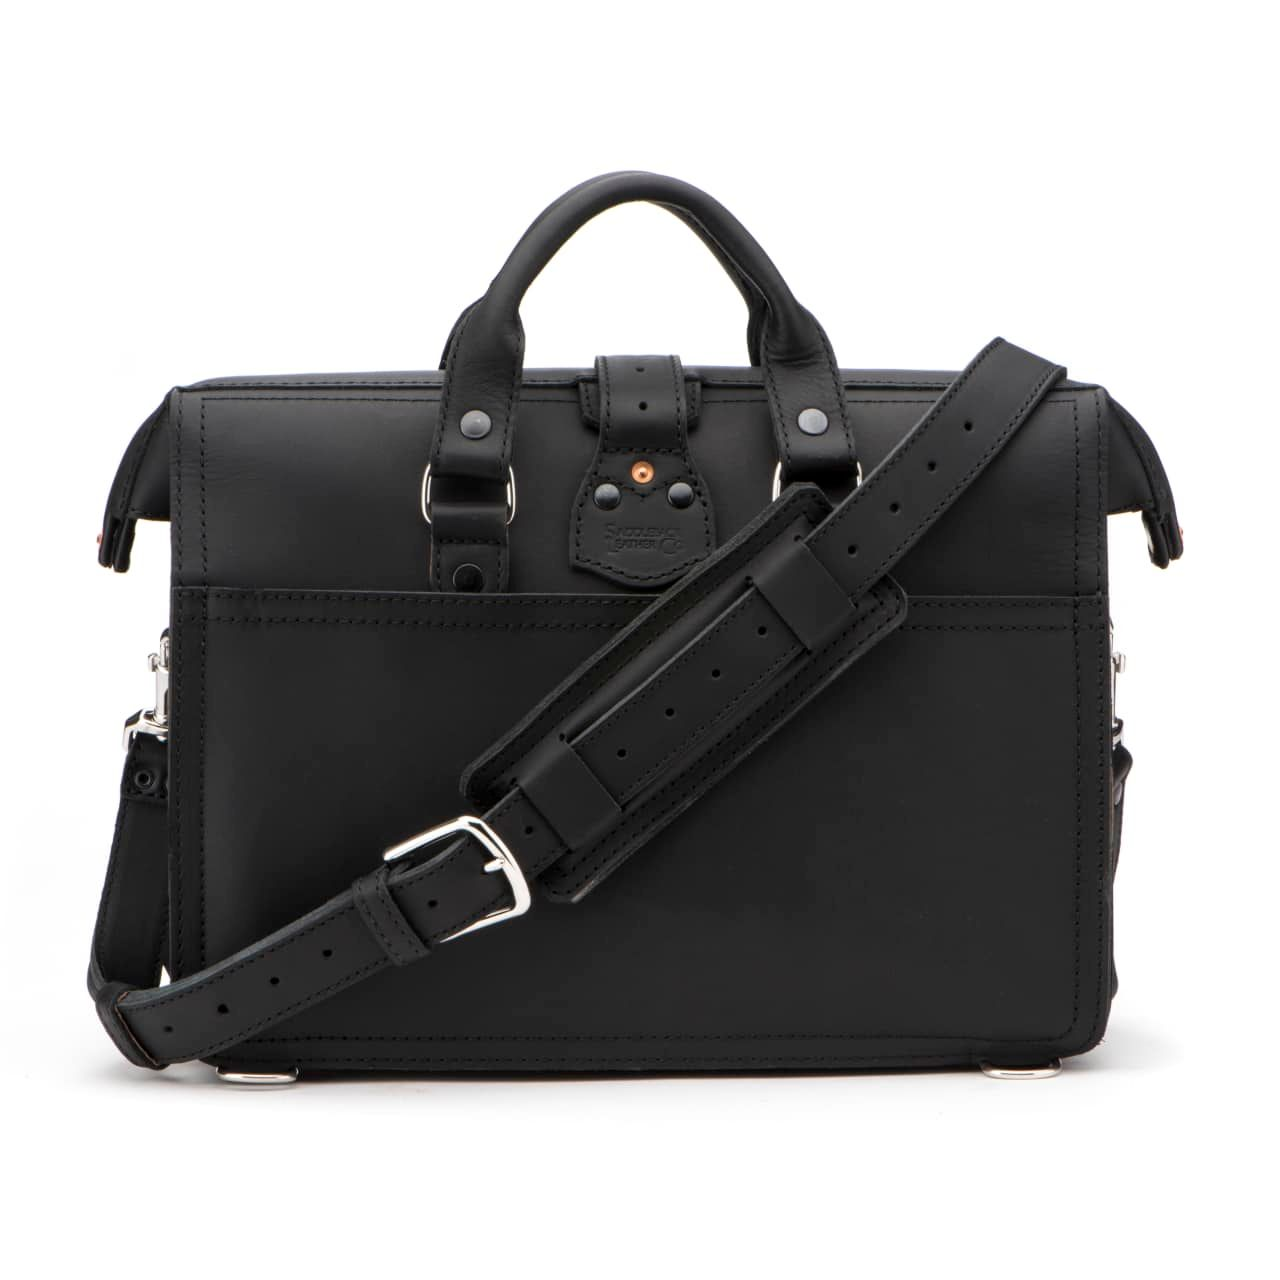 Leather Flight Bag in color Black shown from the back with the Shoulder Strap